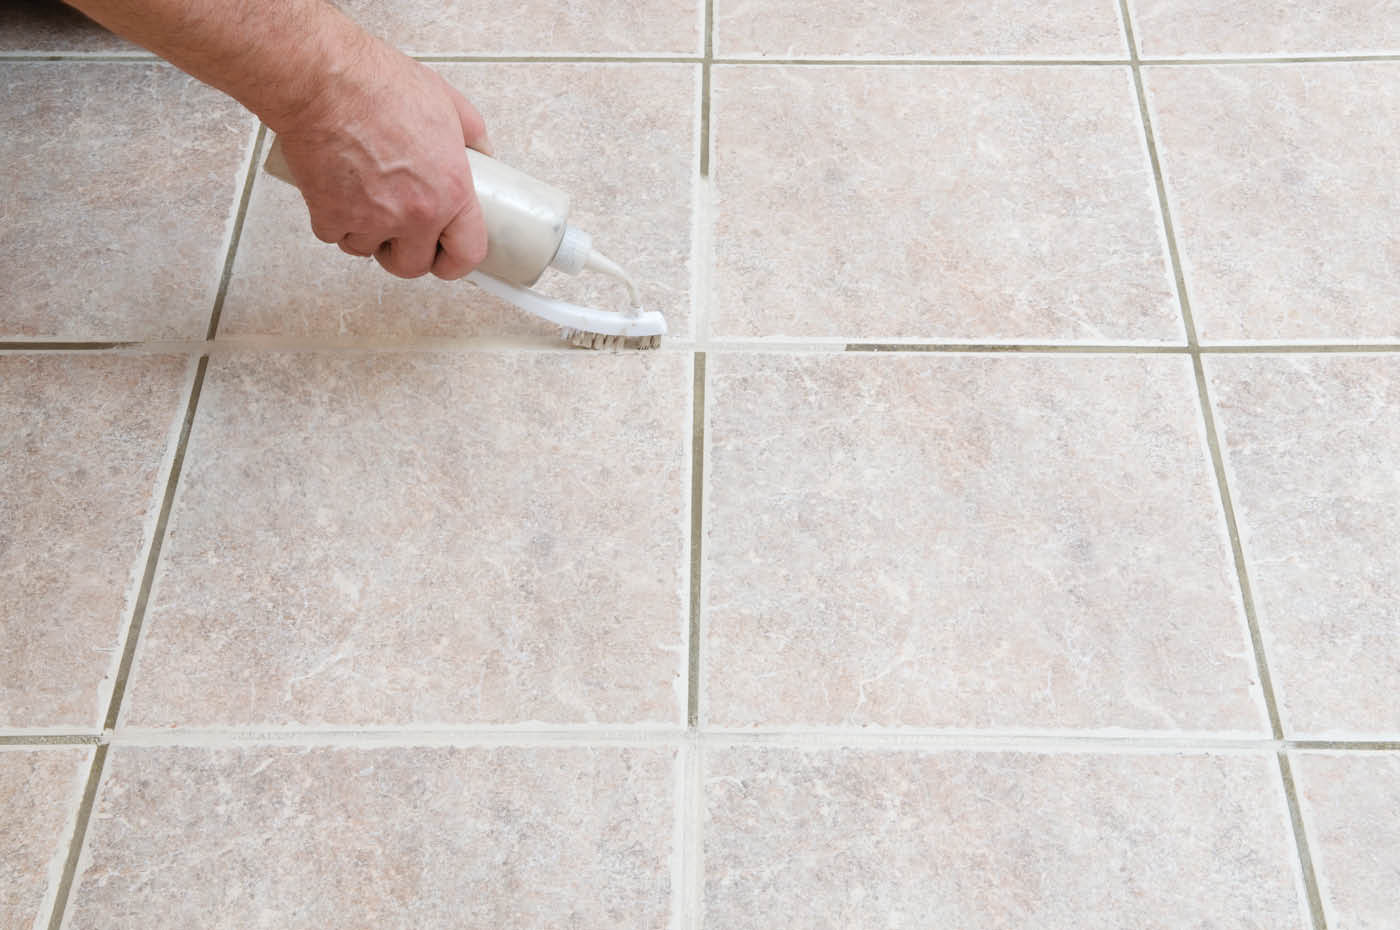 Surprising cleaning grout in tile floors contemporary best natural way to clean ceramic tile floors dailygadgetfo Choice Image